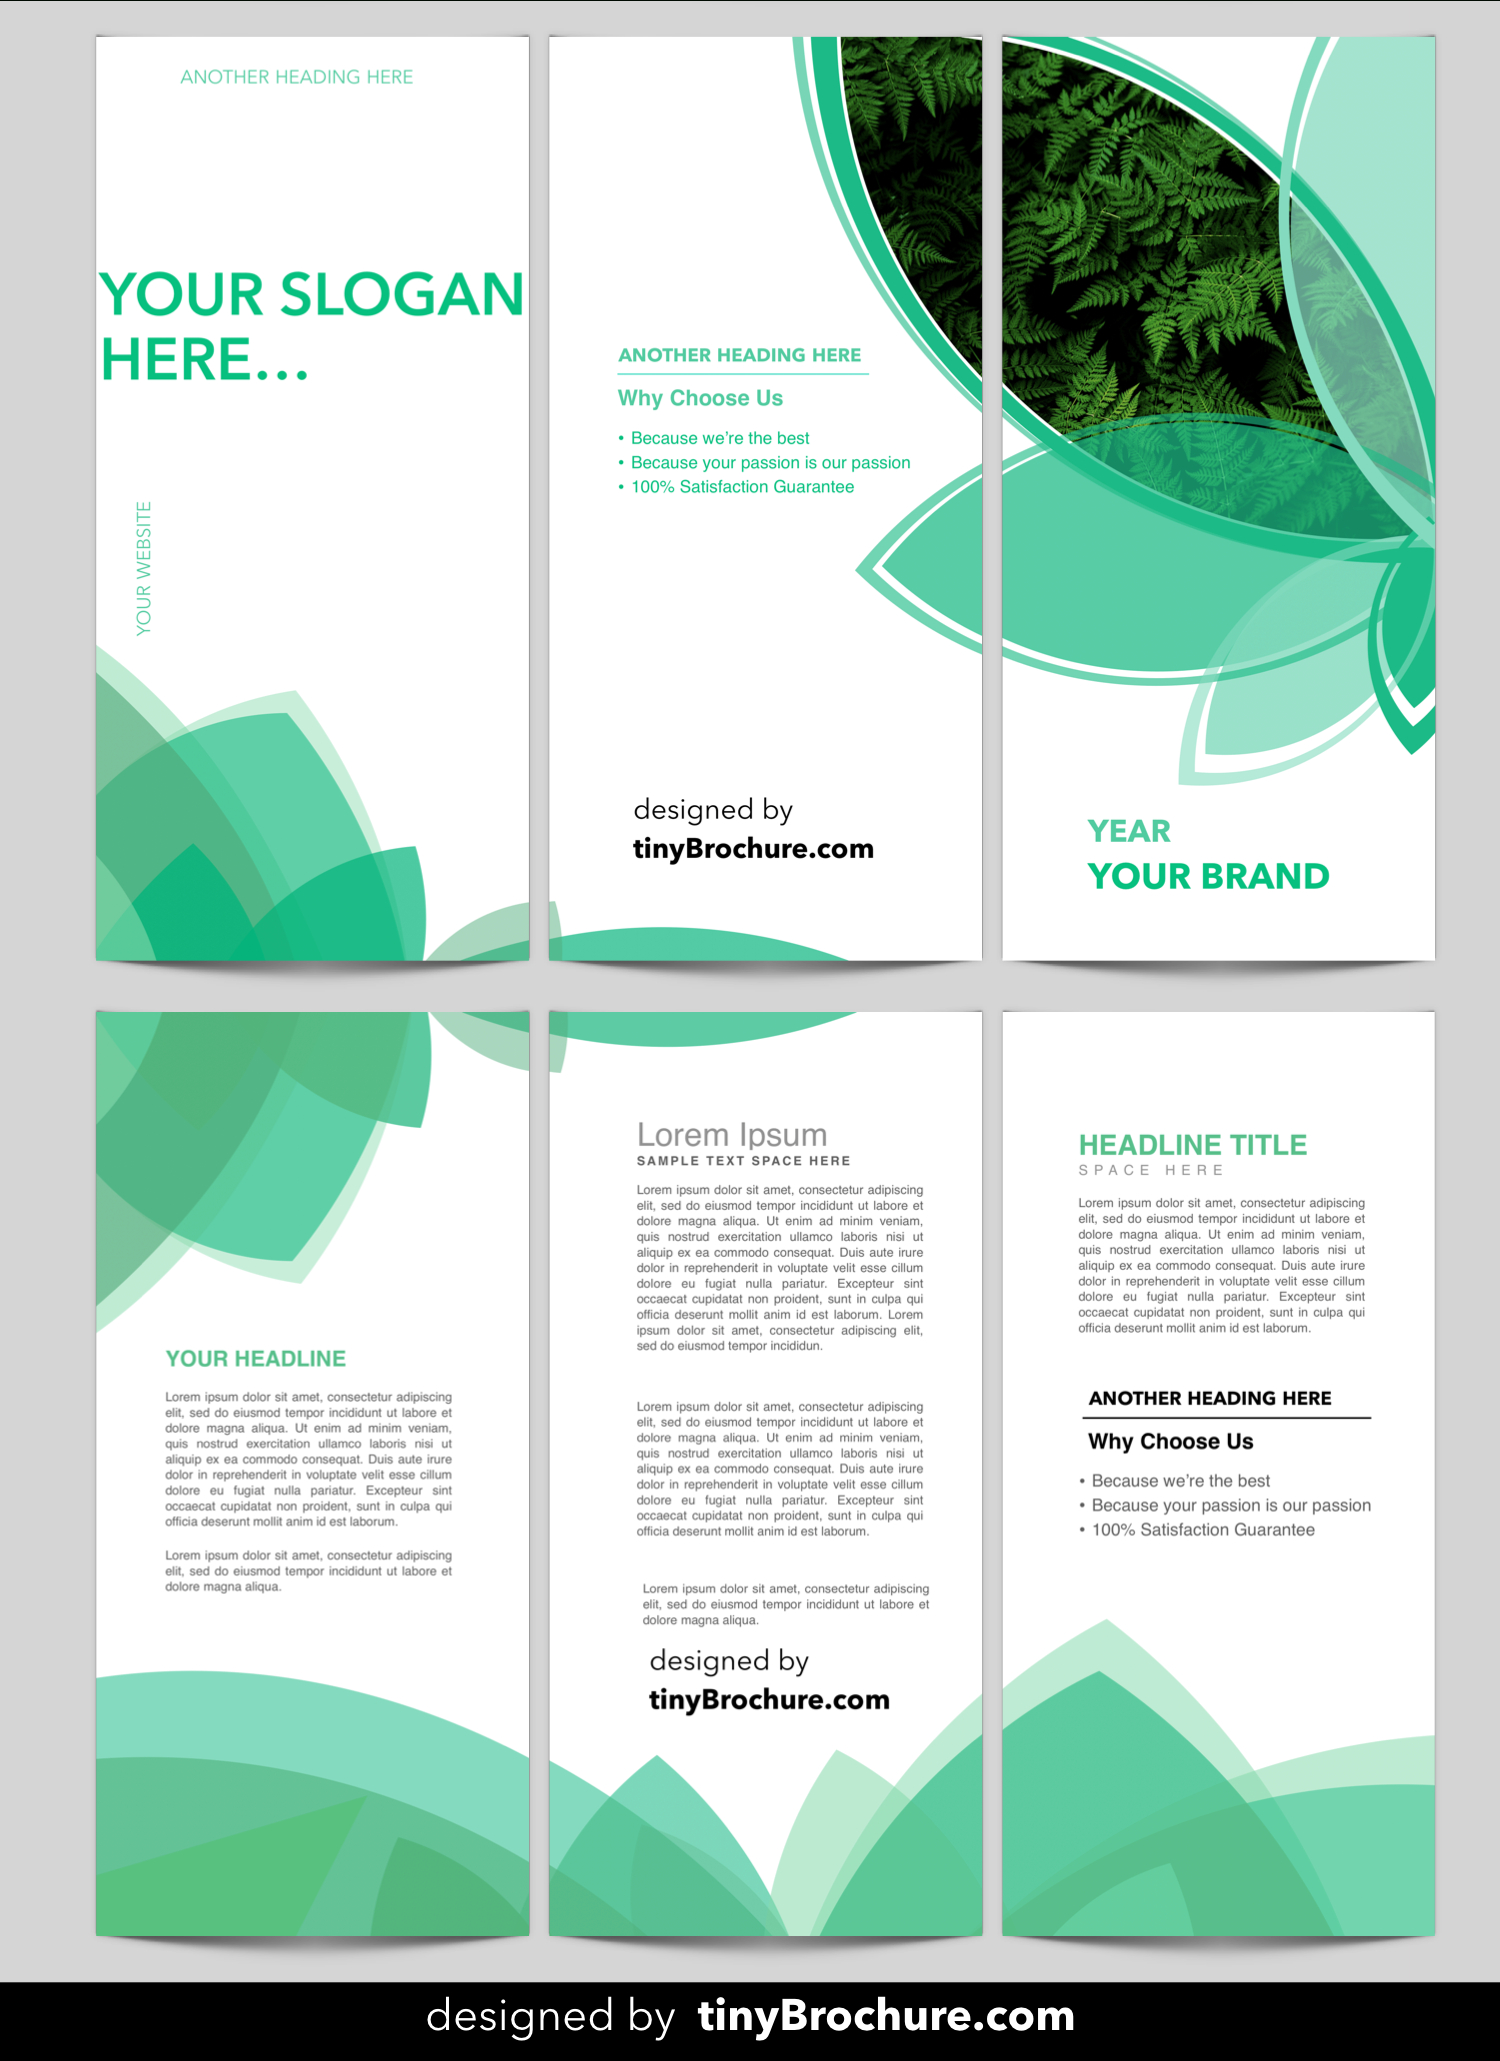 007 Free Downloadable Flyer Templates Template Beautiful With Free Downloadable Templates For Flyers